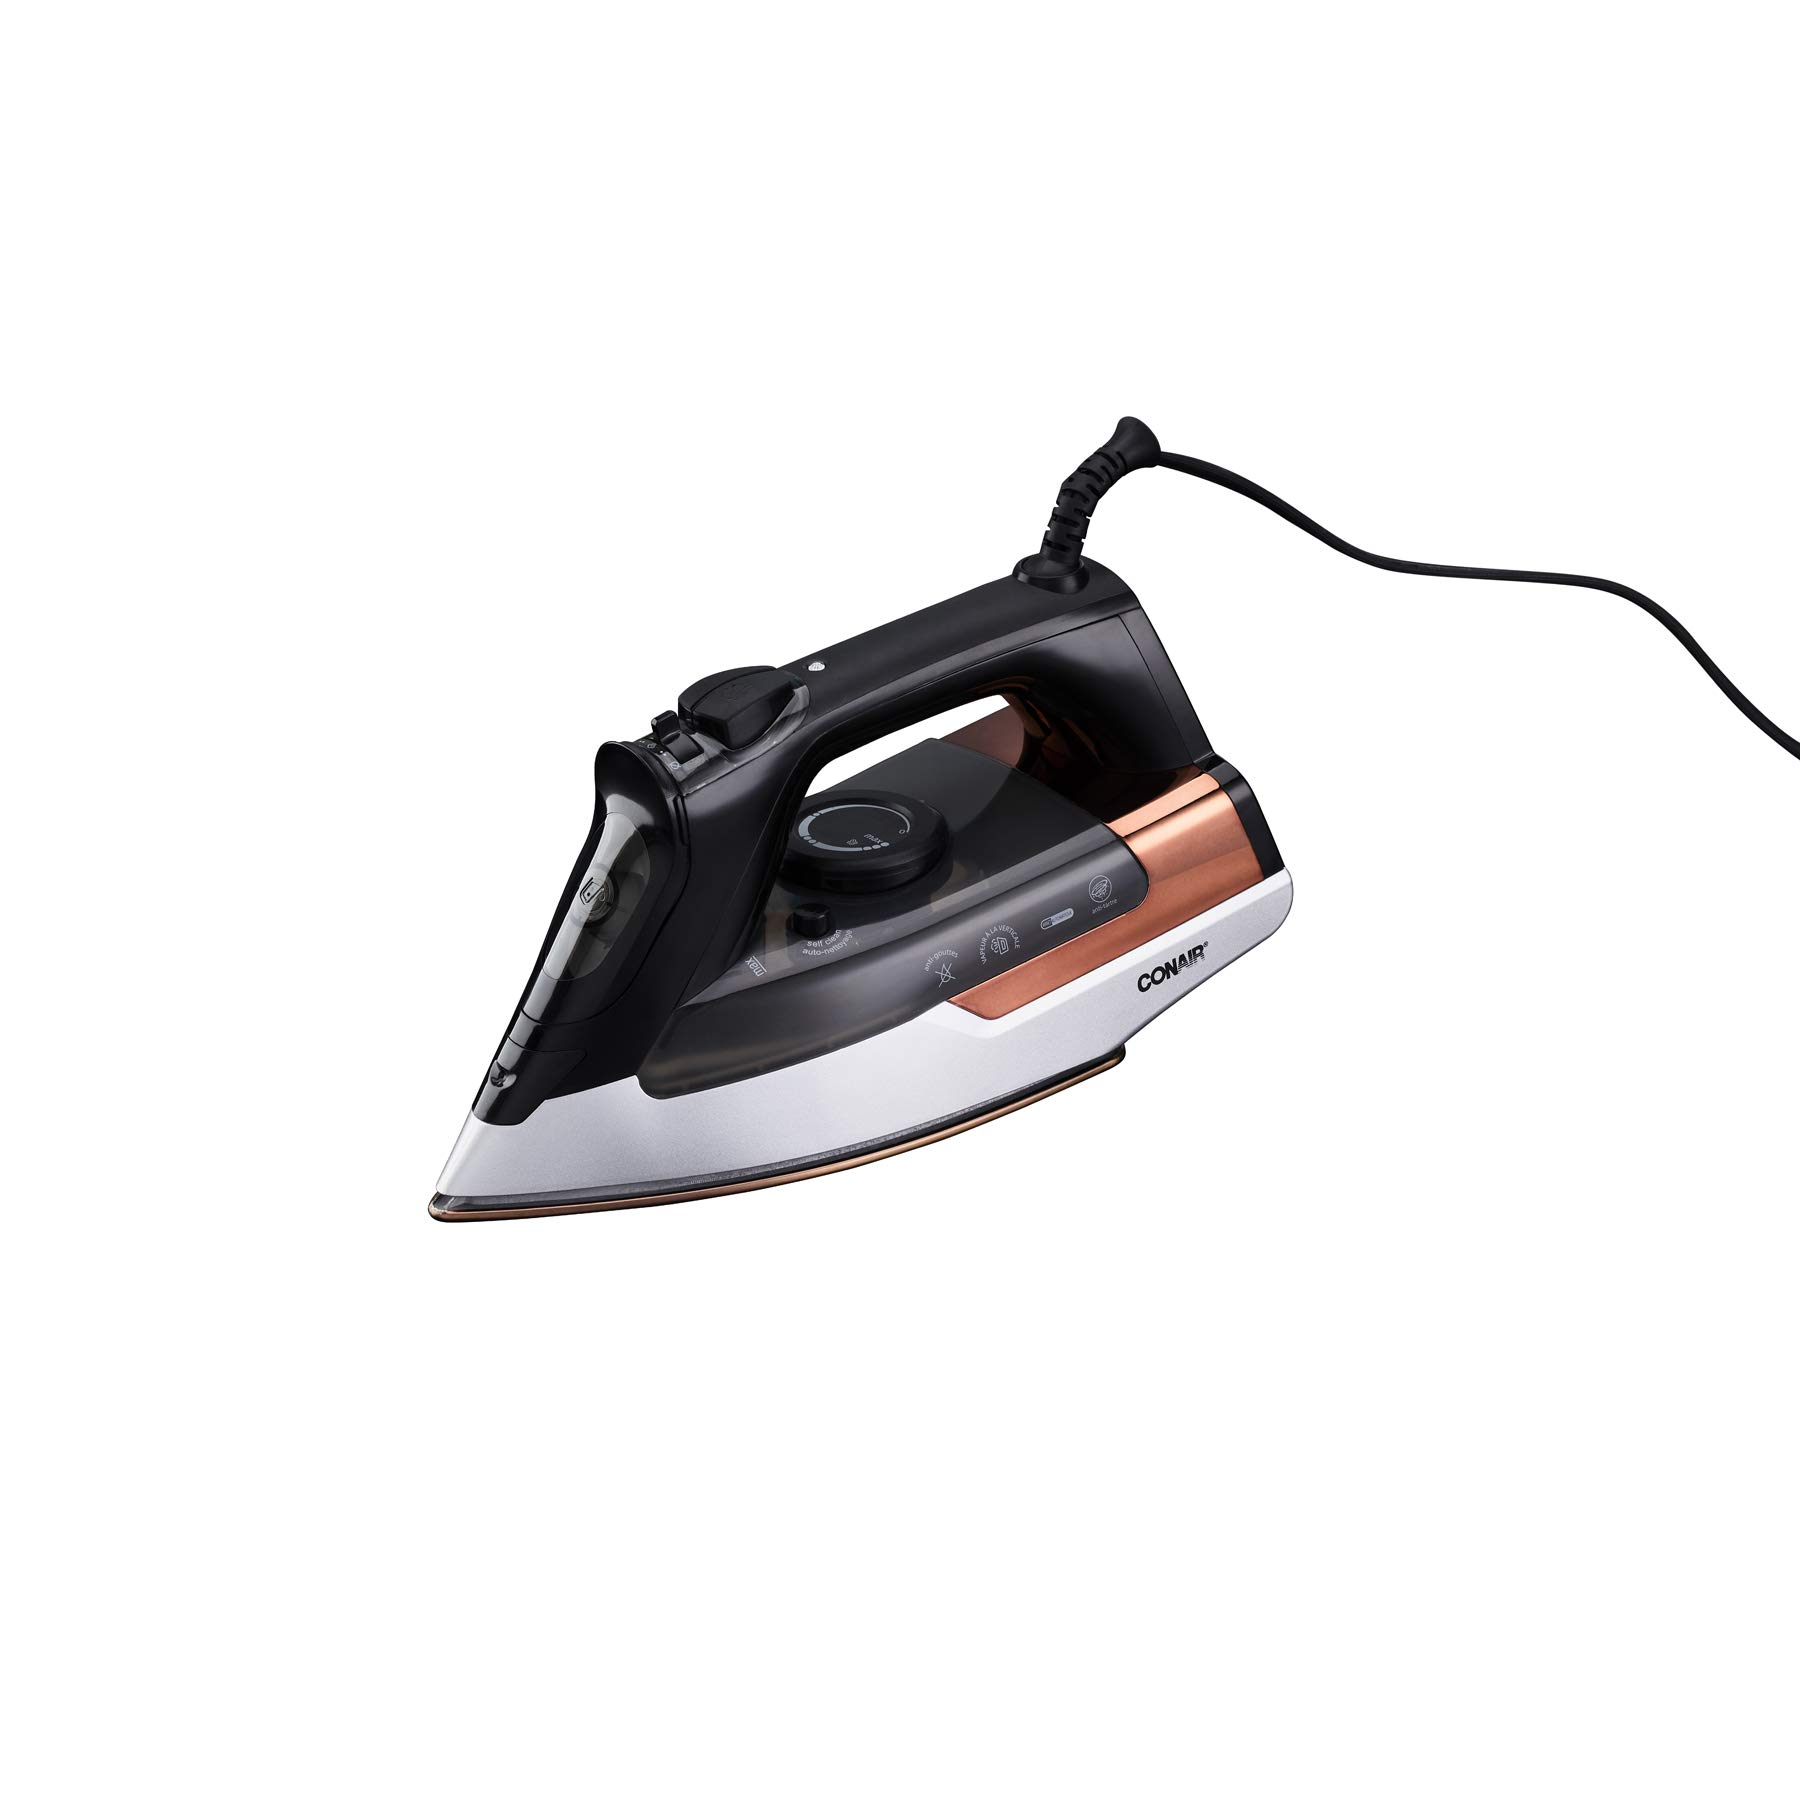 Conair Extreme Steam Pro Steam Clothing Iron, 1875-Watts with Nano Titanium Soleplate Iron by Conair